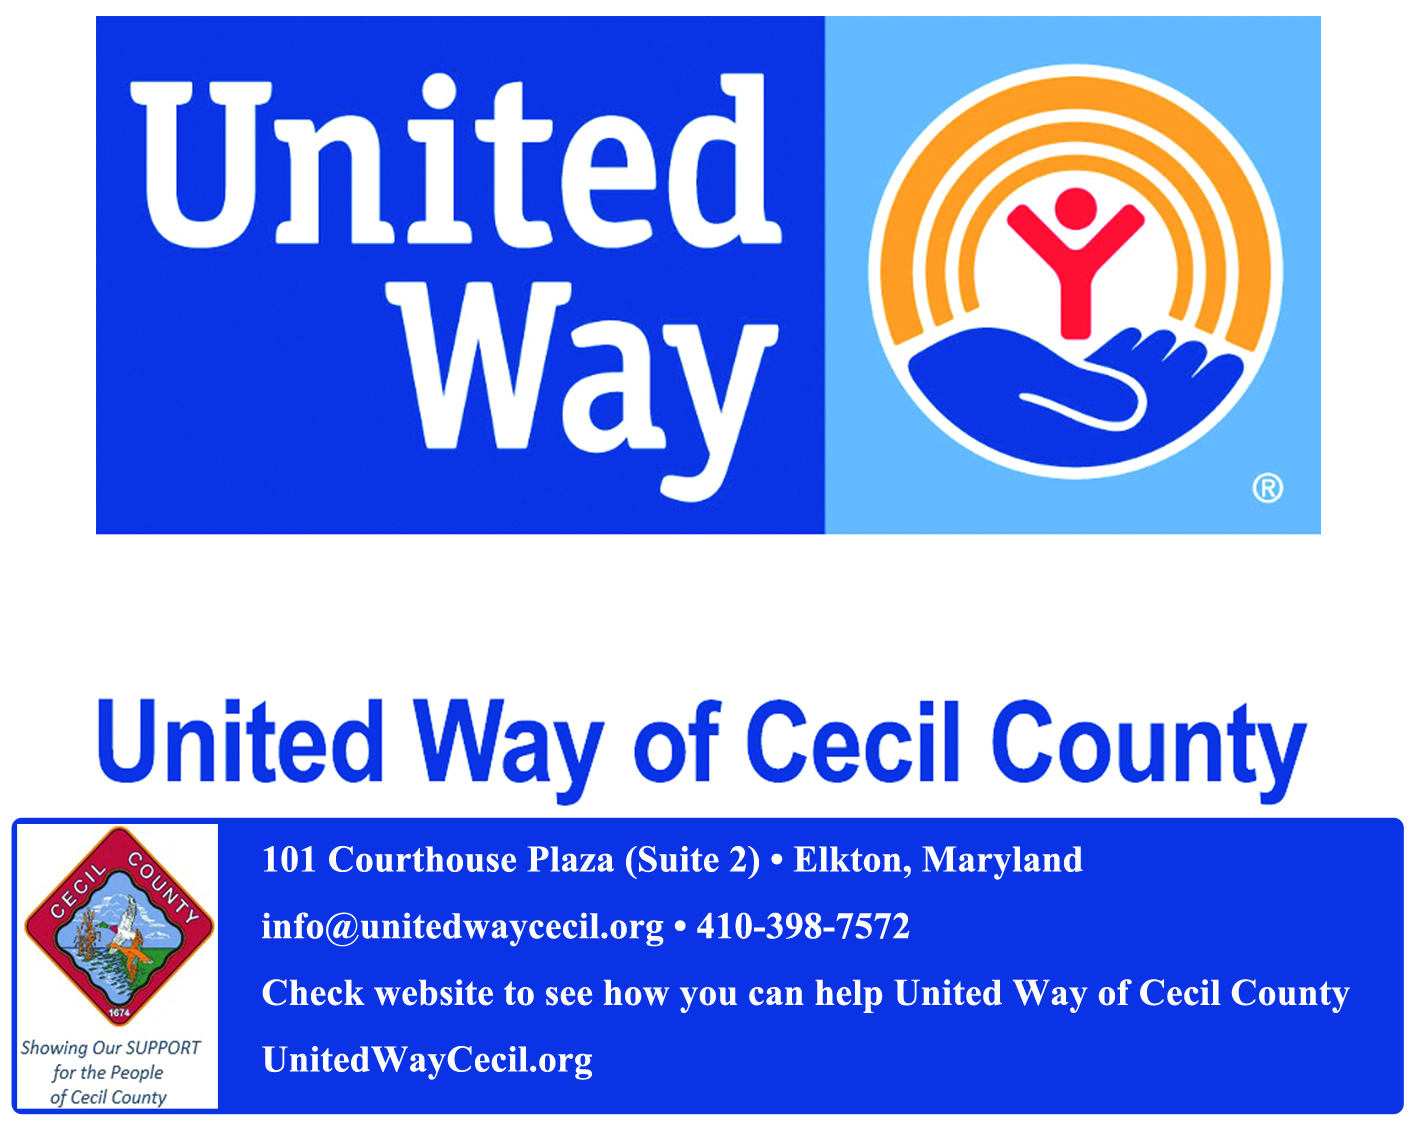 United Way of Cecil County